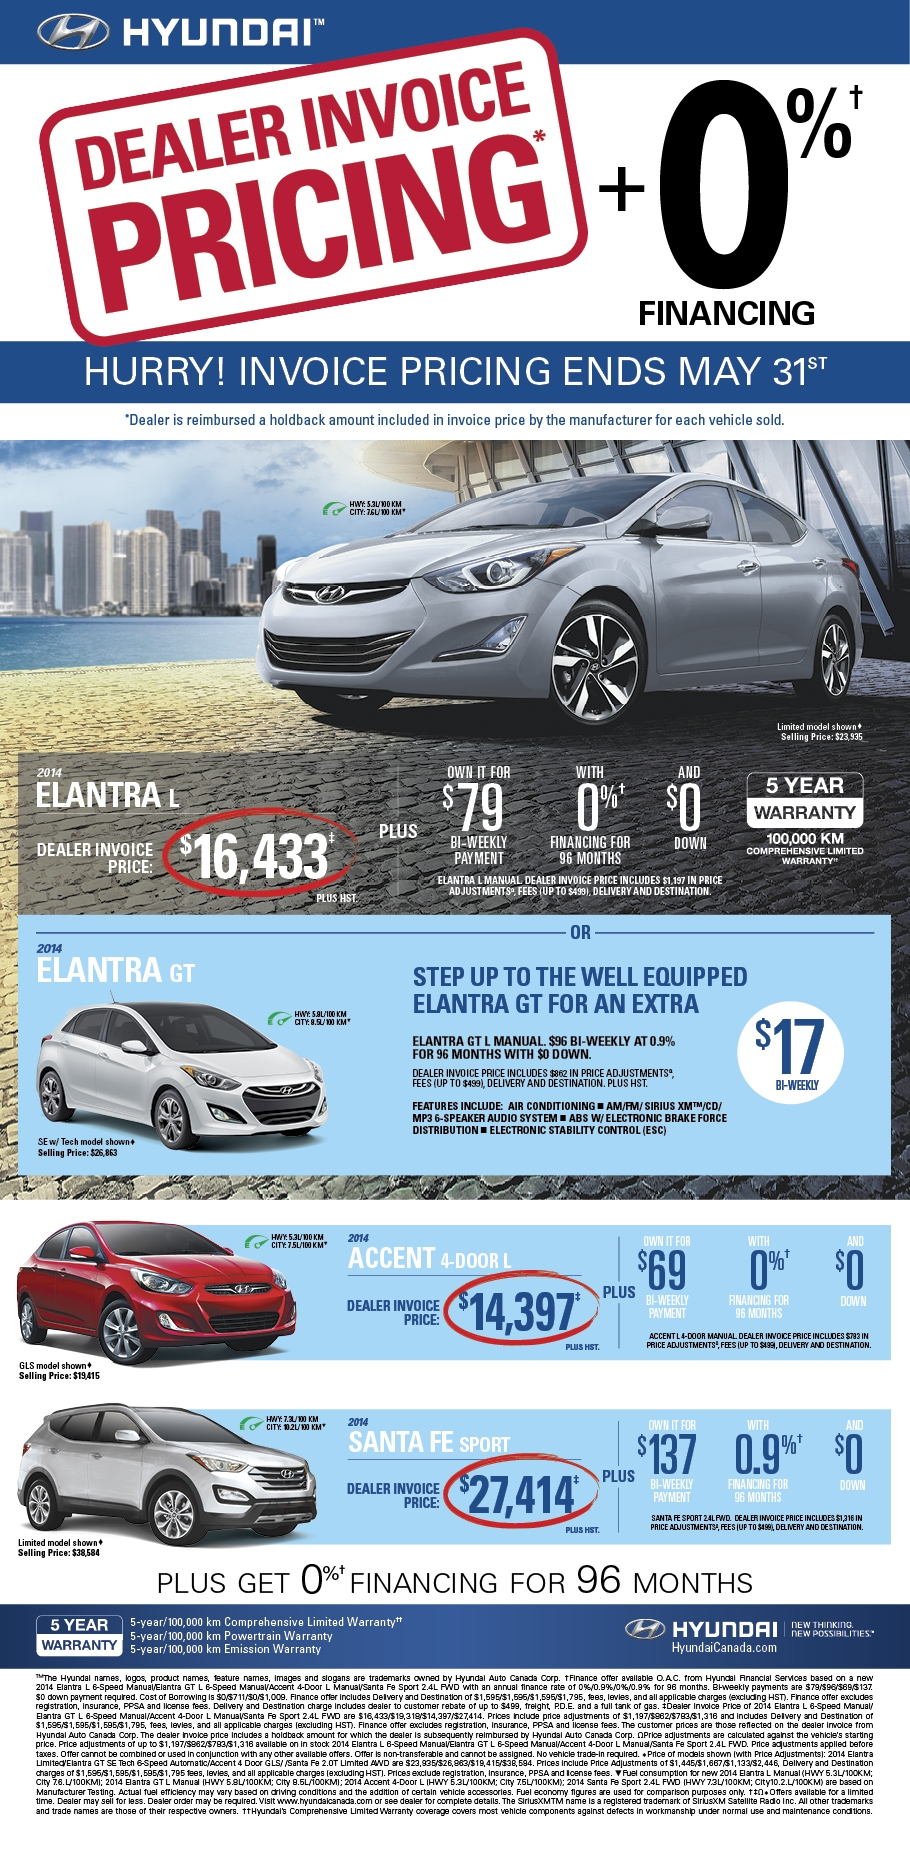 agincourt hyundai dealer invoice pricing event may 2014 hyundai invoice prices